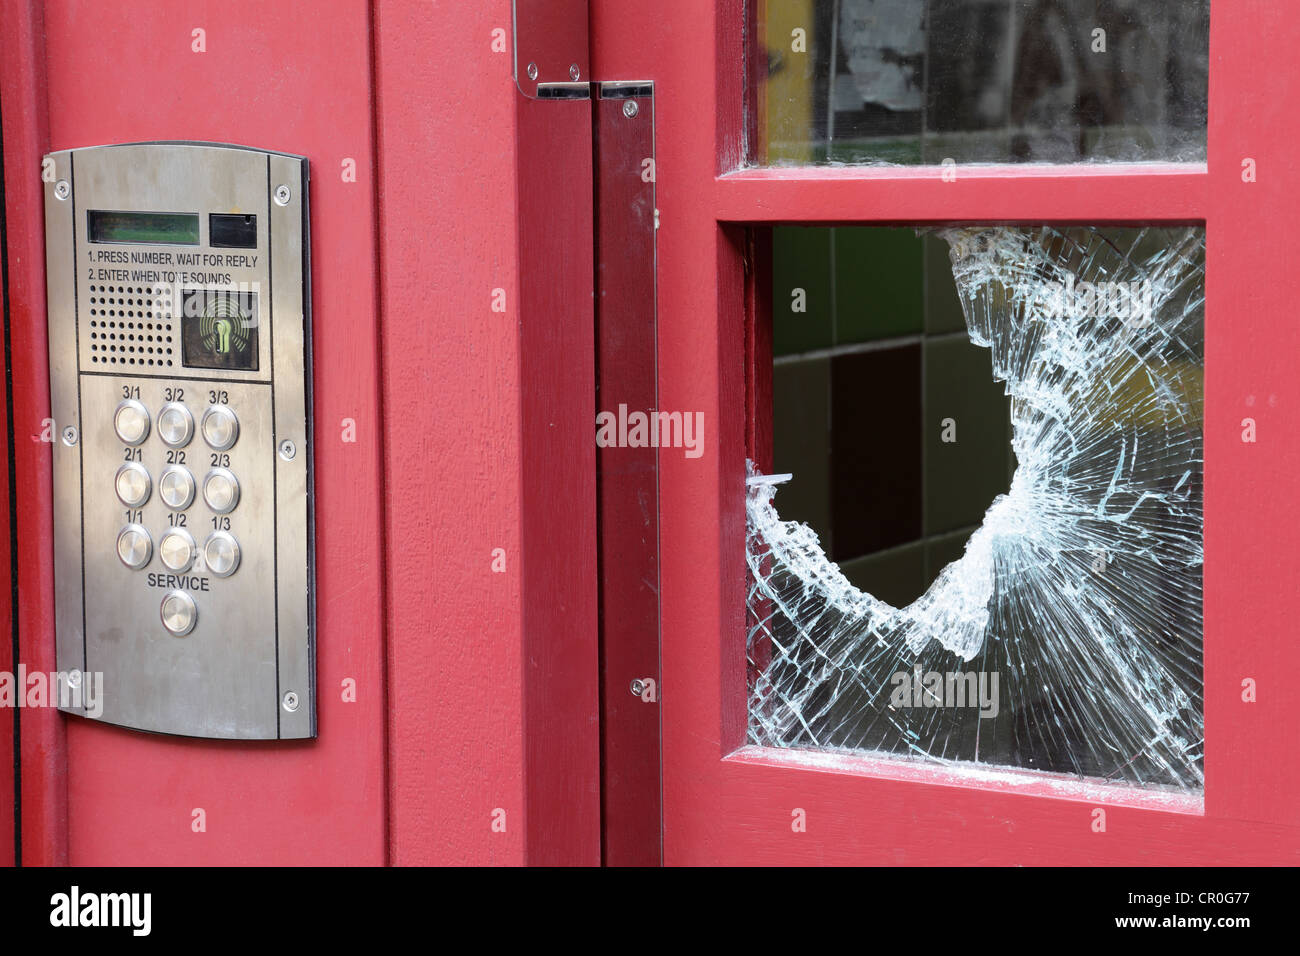 A broken window in a domestic door entry security system in Glasgow city centre, Scotland, UK - Stock Image